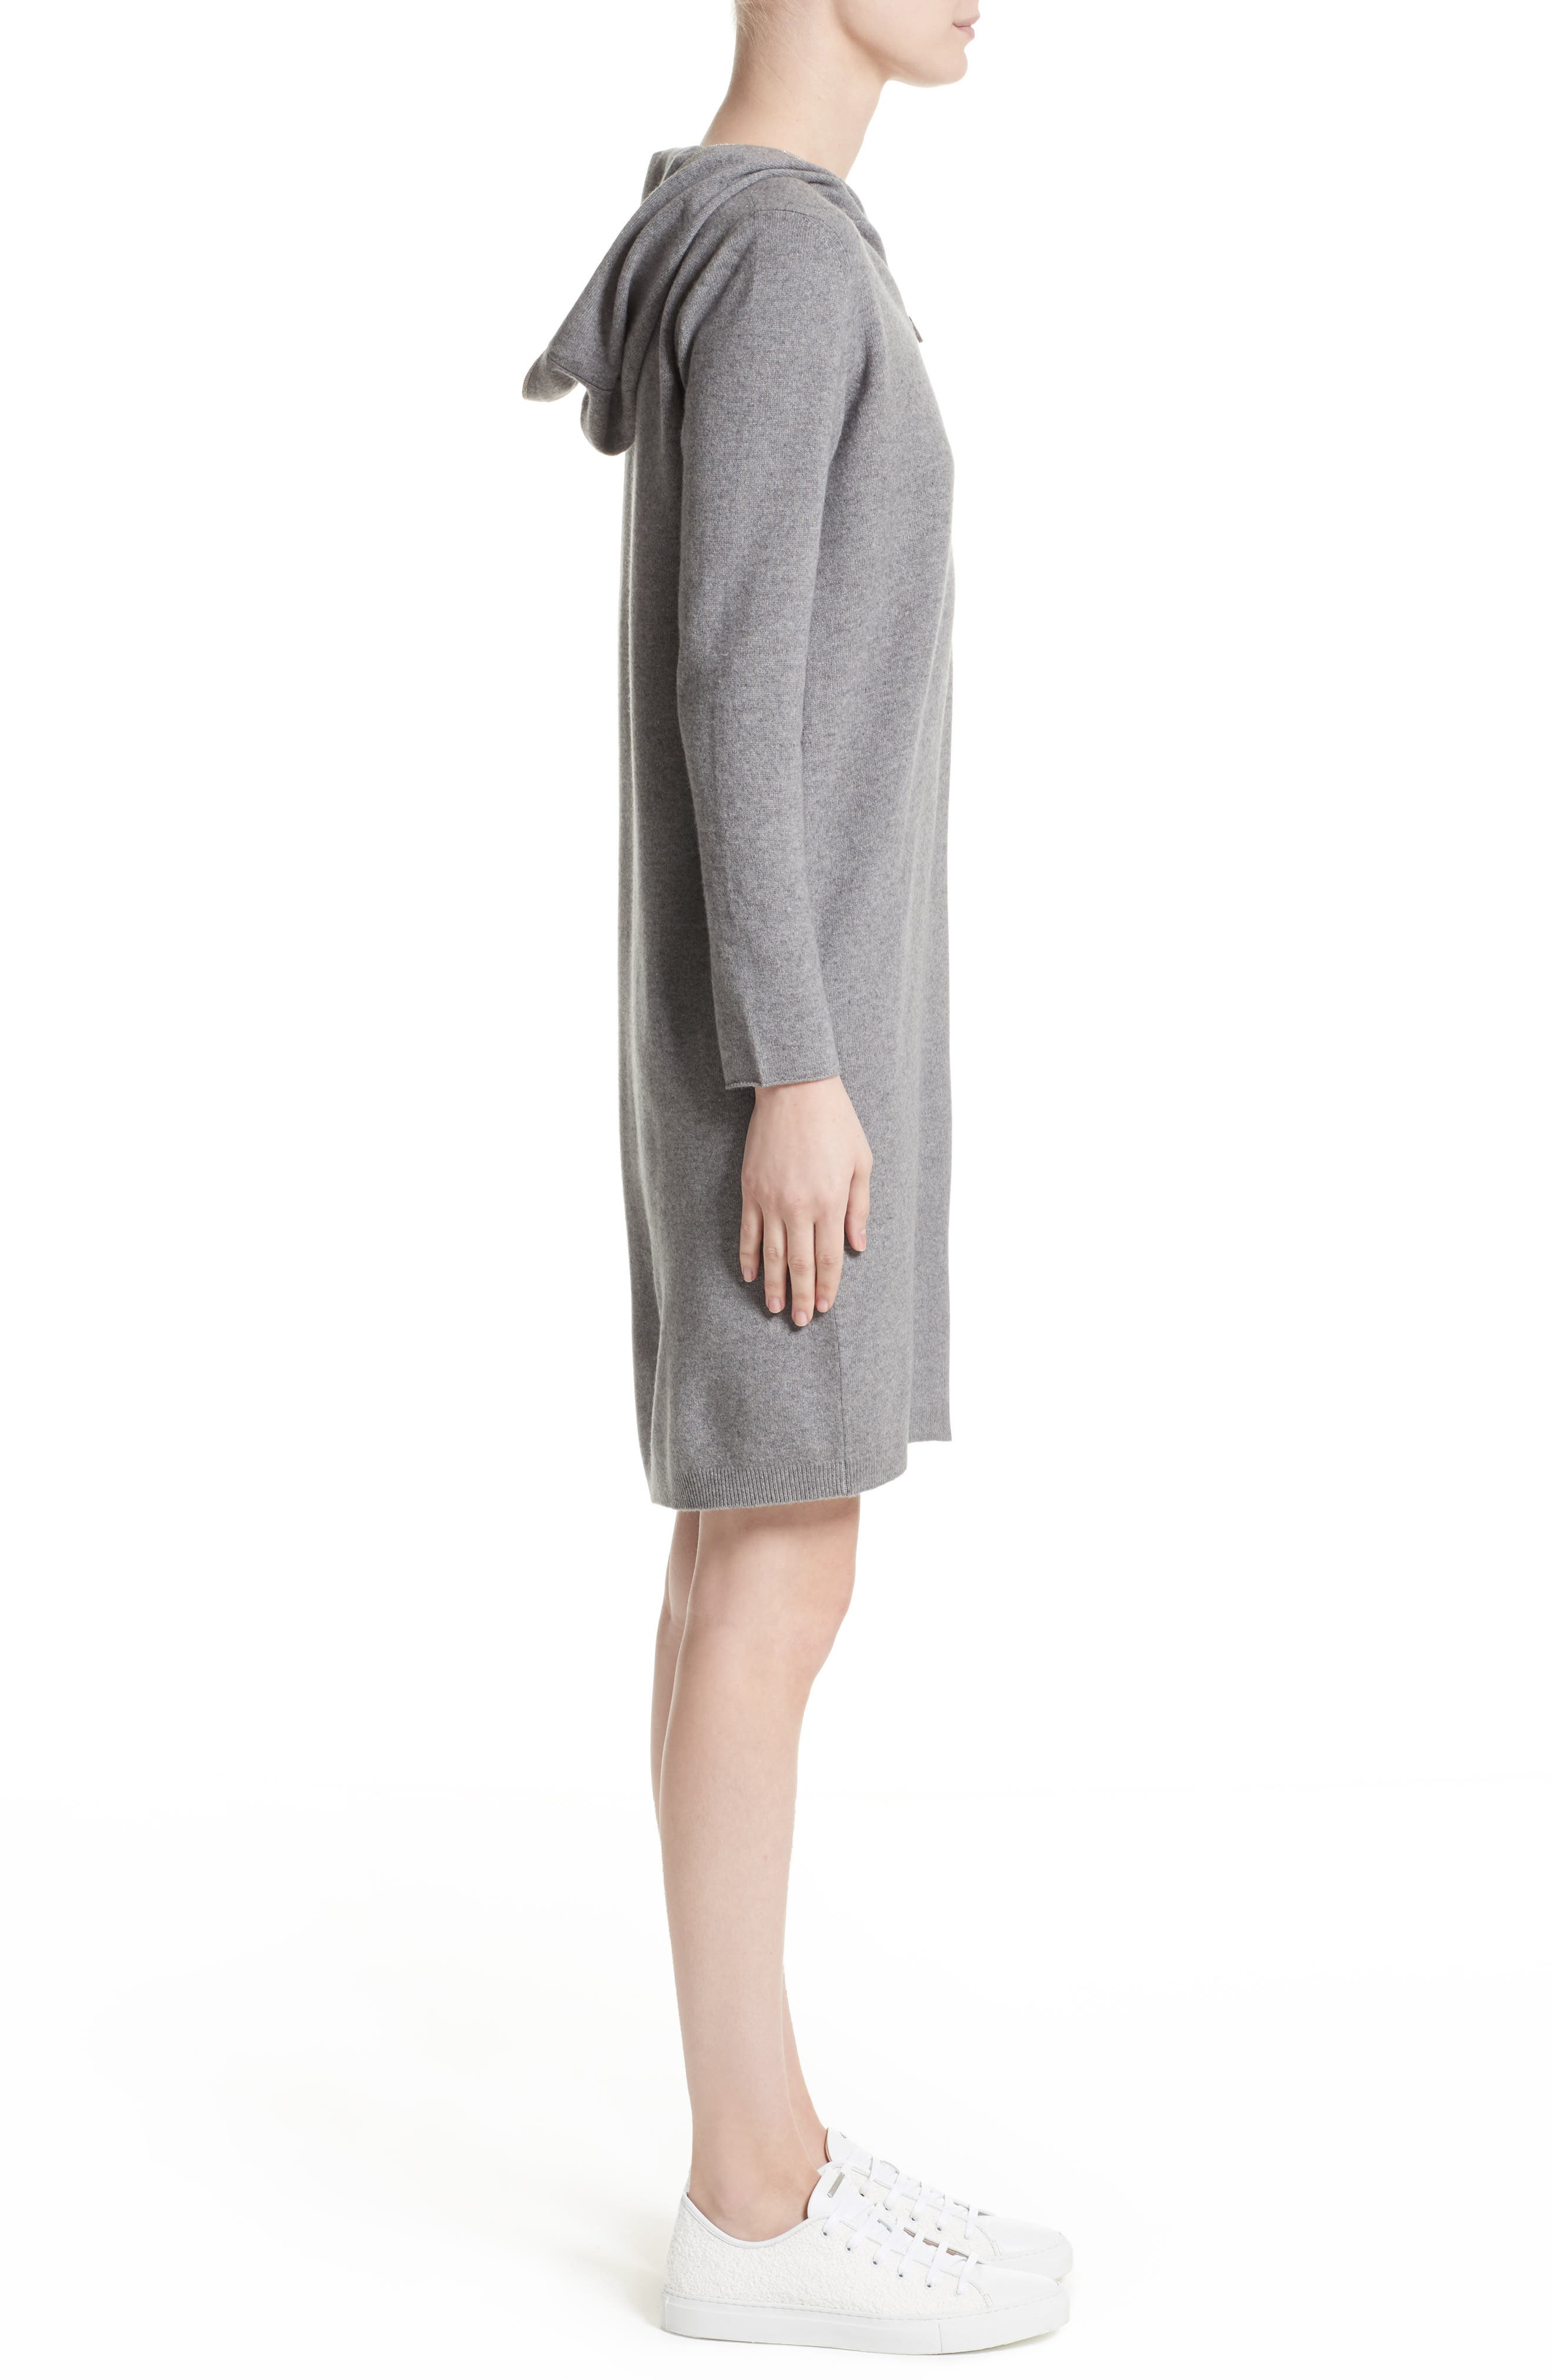 Wool, Silk & Cashmere Hooded Dress,                             Alternate thumbnail 3, color,                             020